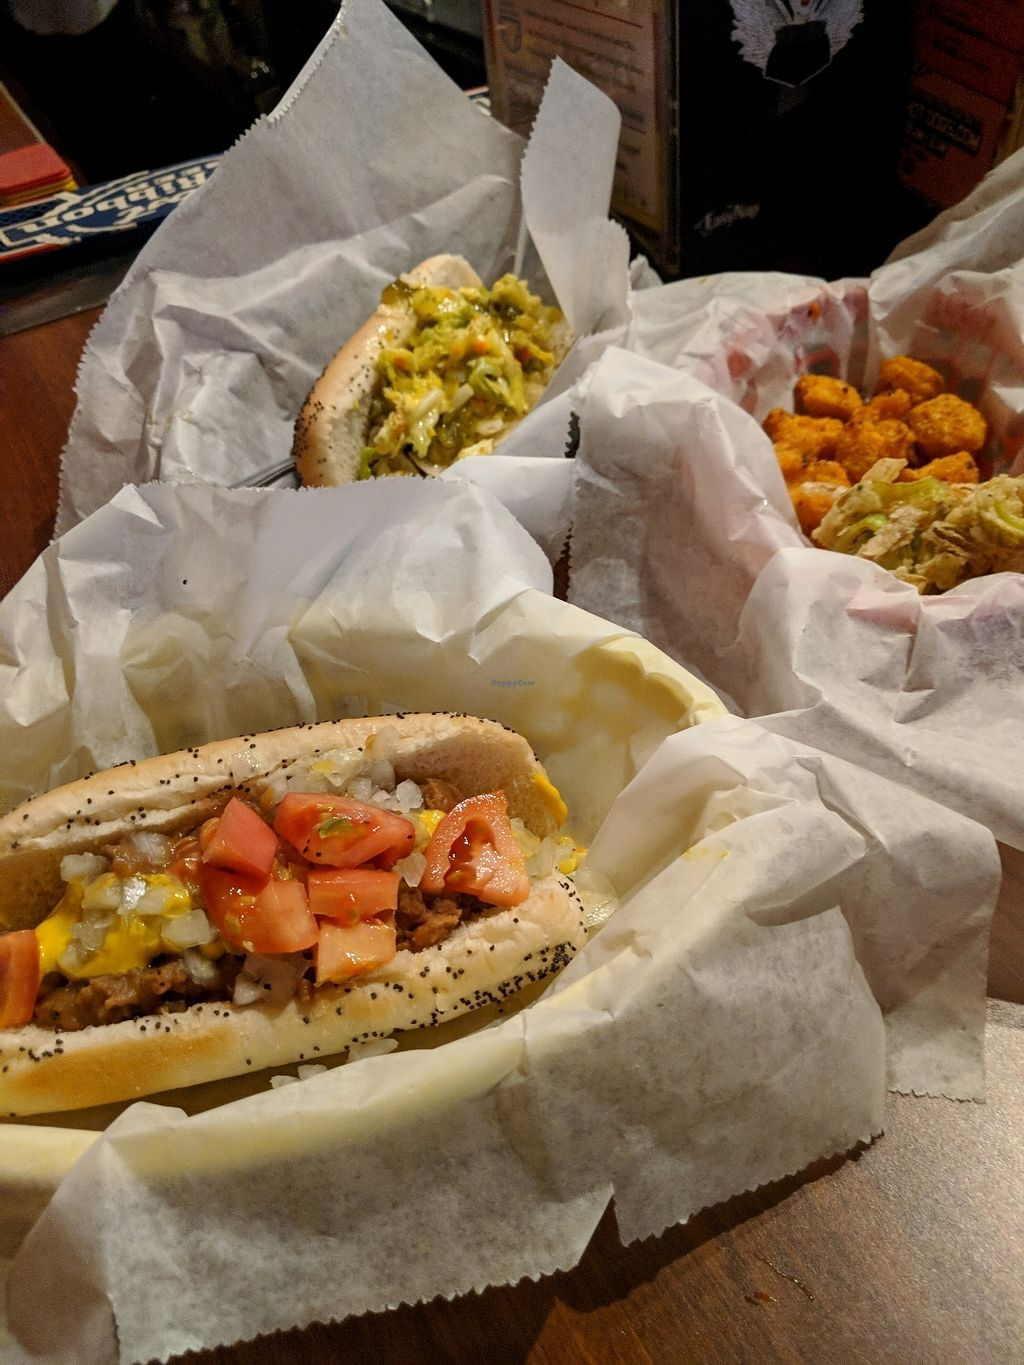 "Photo of Dirty Franks Hot Dog Palace  by <a href=""/members/profile/Toroco"">Toroco</a> <br/>Beano, Picnic Table and Spicy Cauliflower Bites <br/> April 9, 2018  - <a href='/contact/abuse/image/29125/383086'>Report</a>"